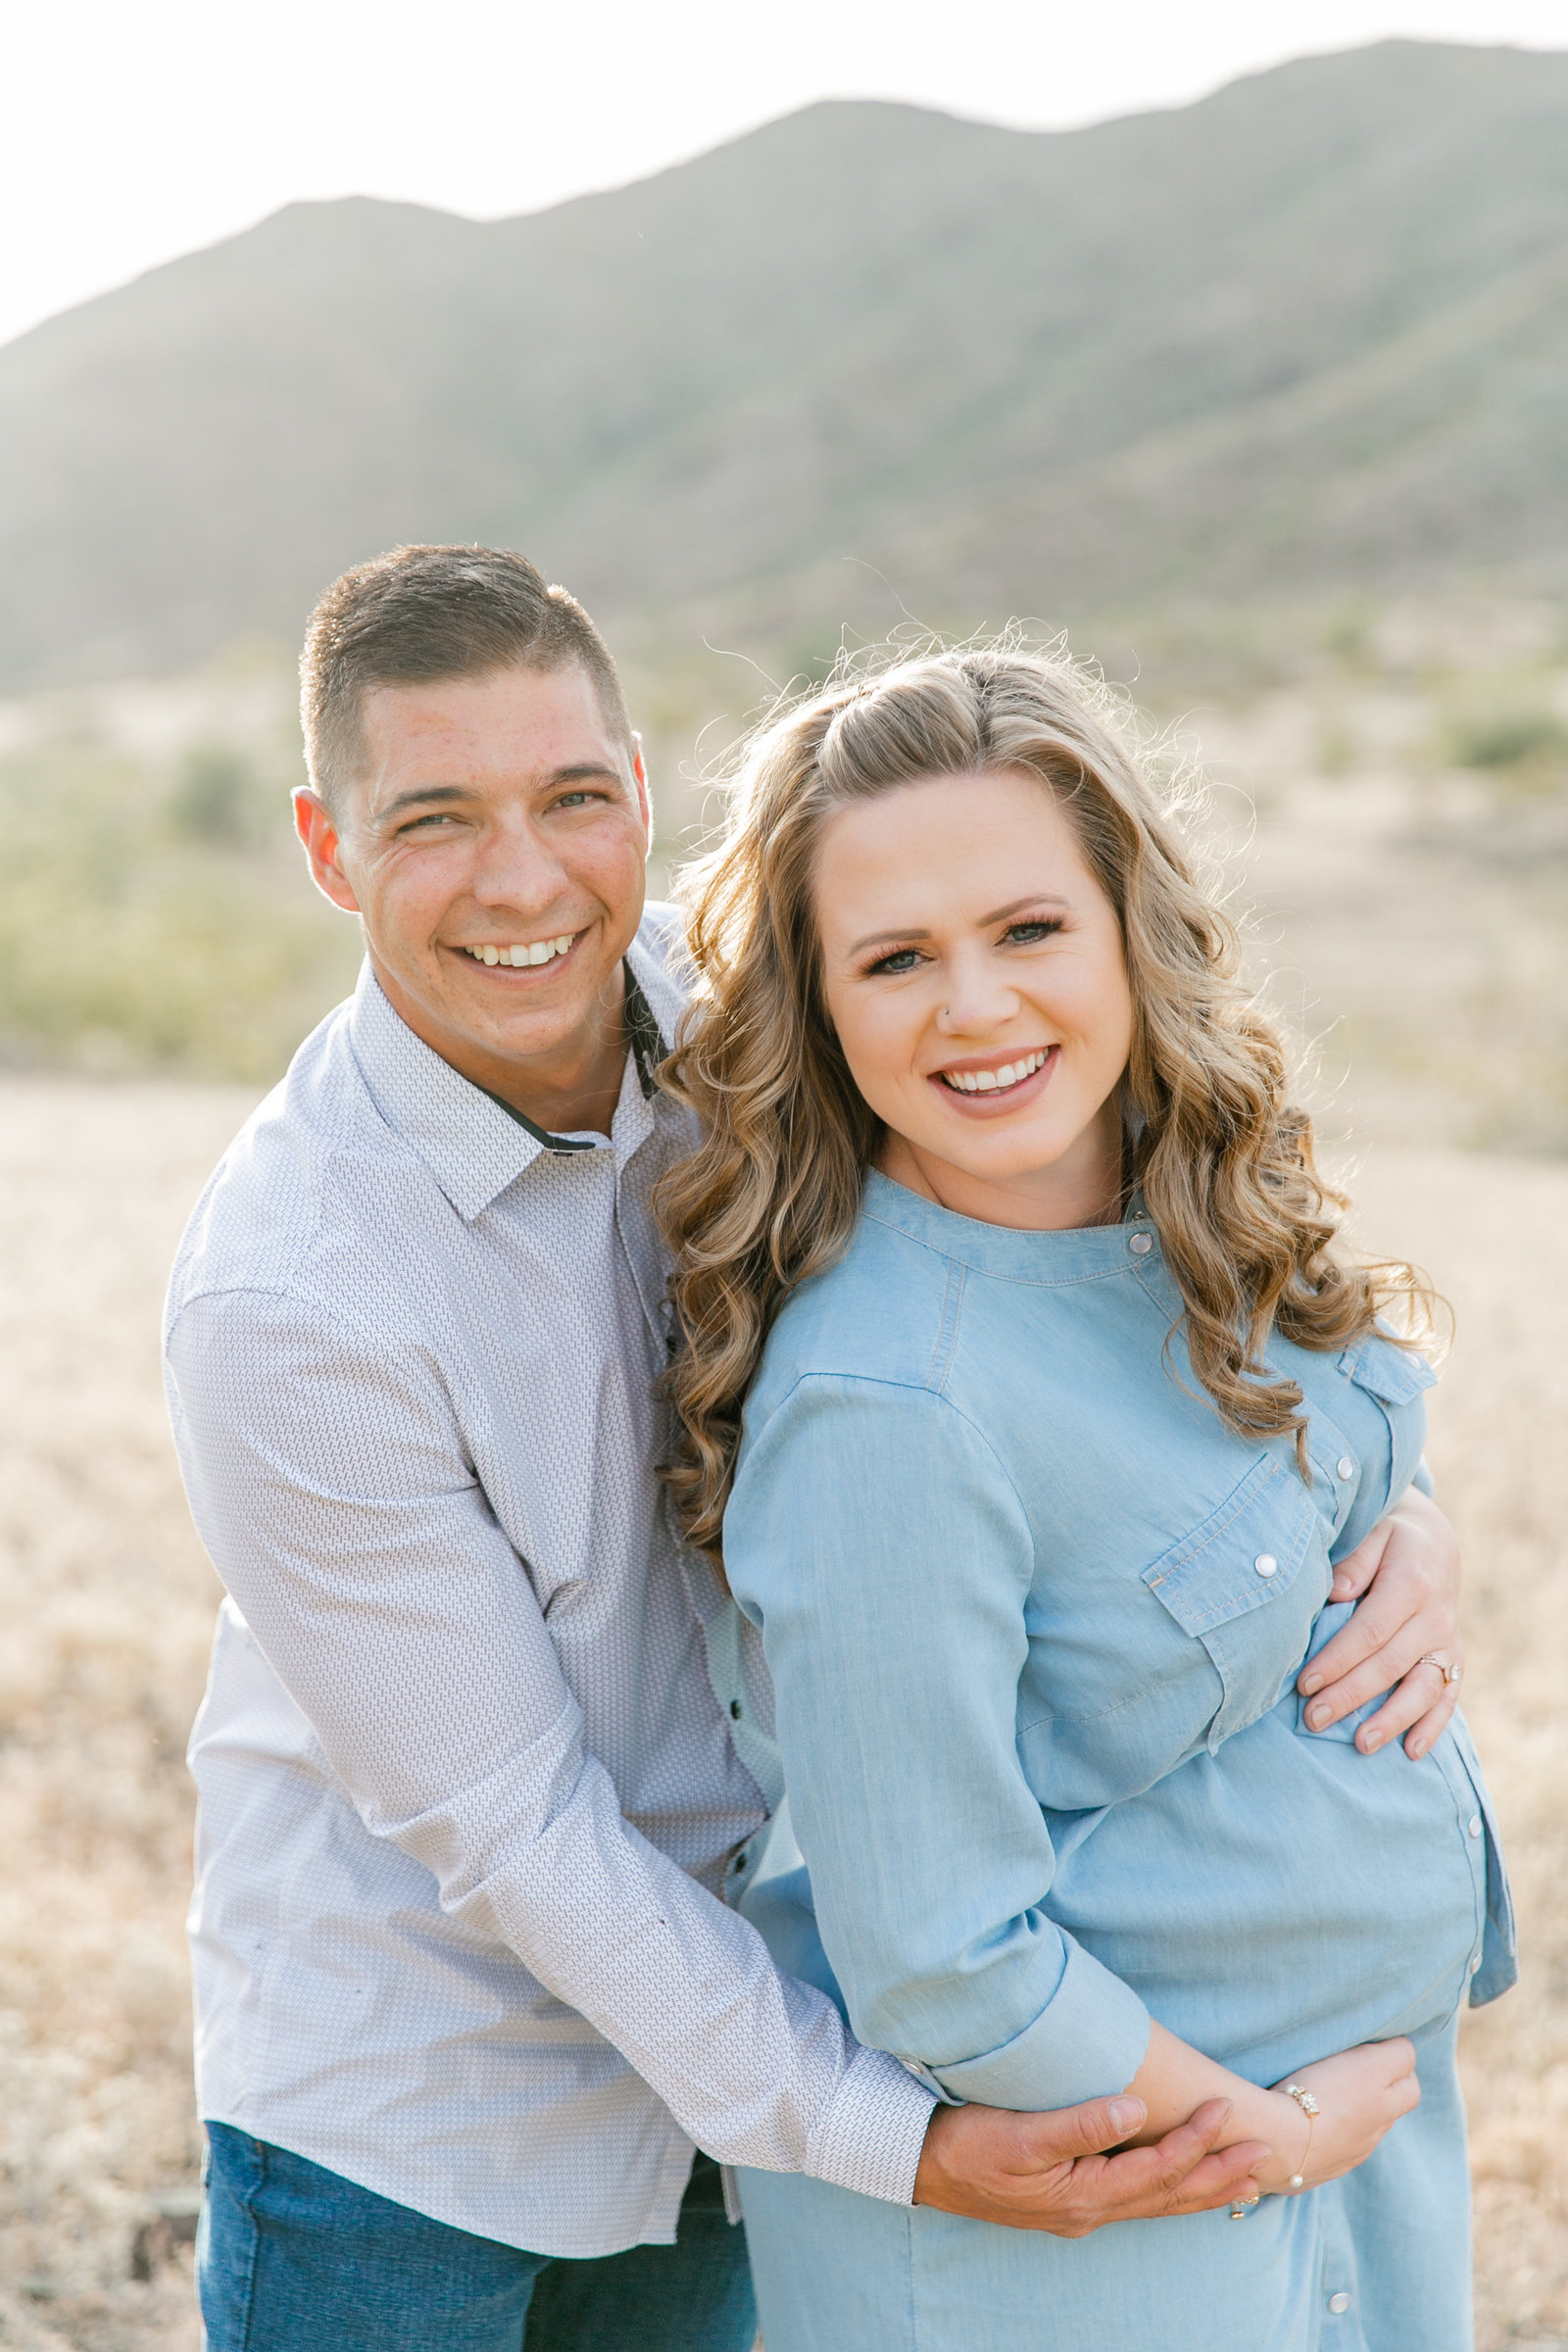 Karlie Colleen Photography - Arizona Maternity Photography - Brittany & Kyle-87